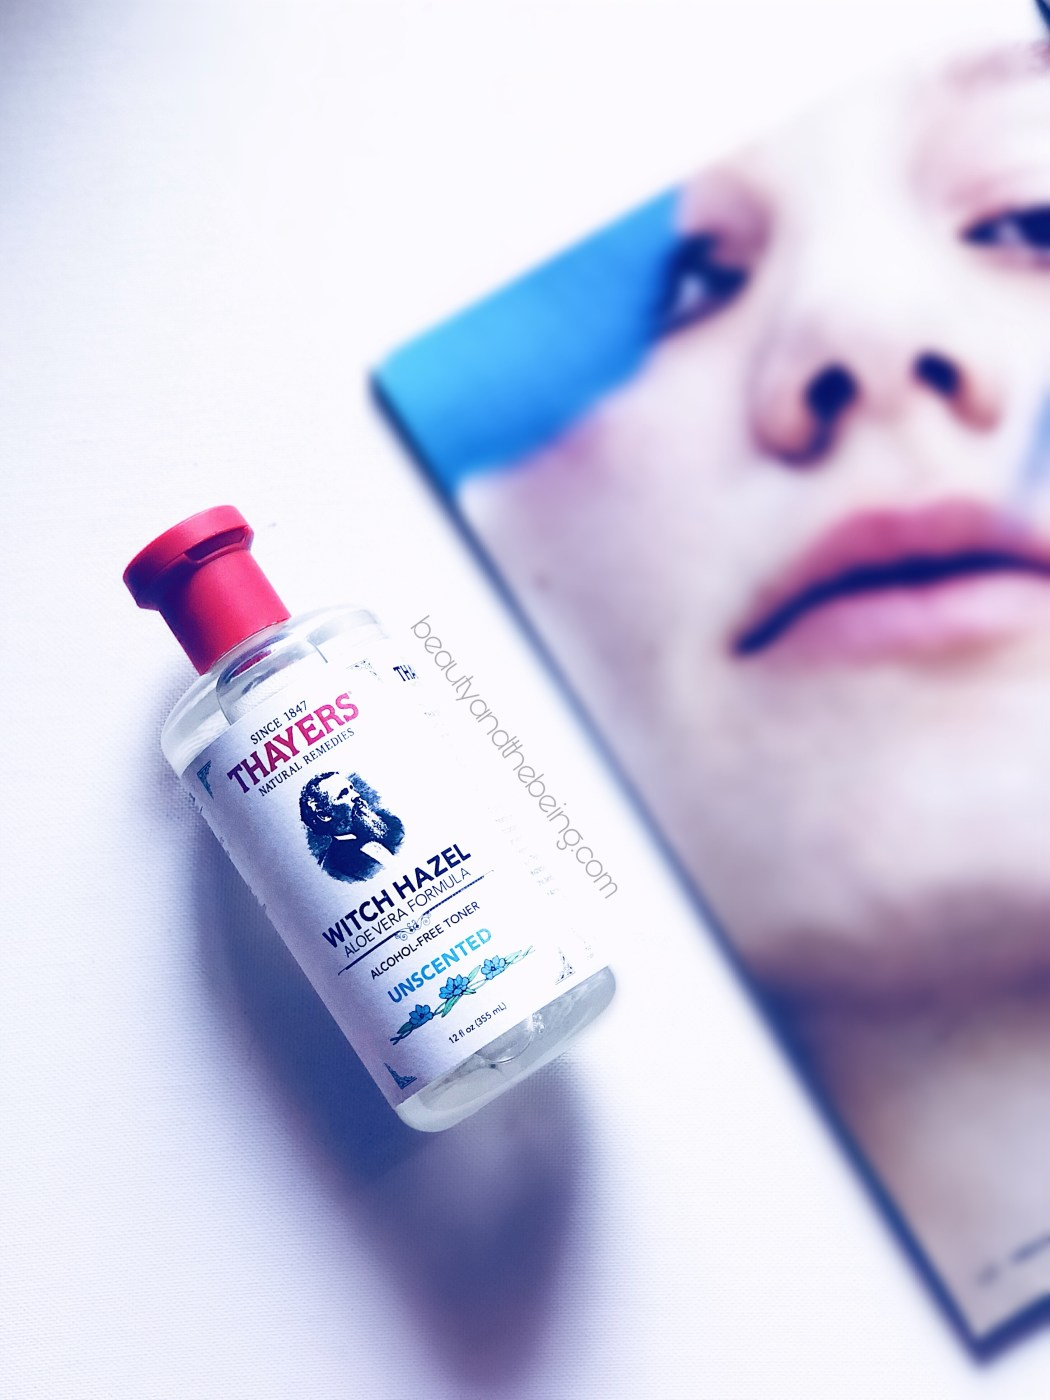 Thayers Witch Hazel Aloe Vera Toner (Unscented) | Review